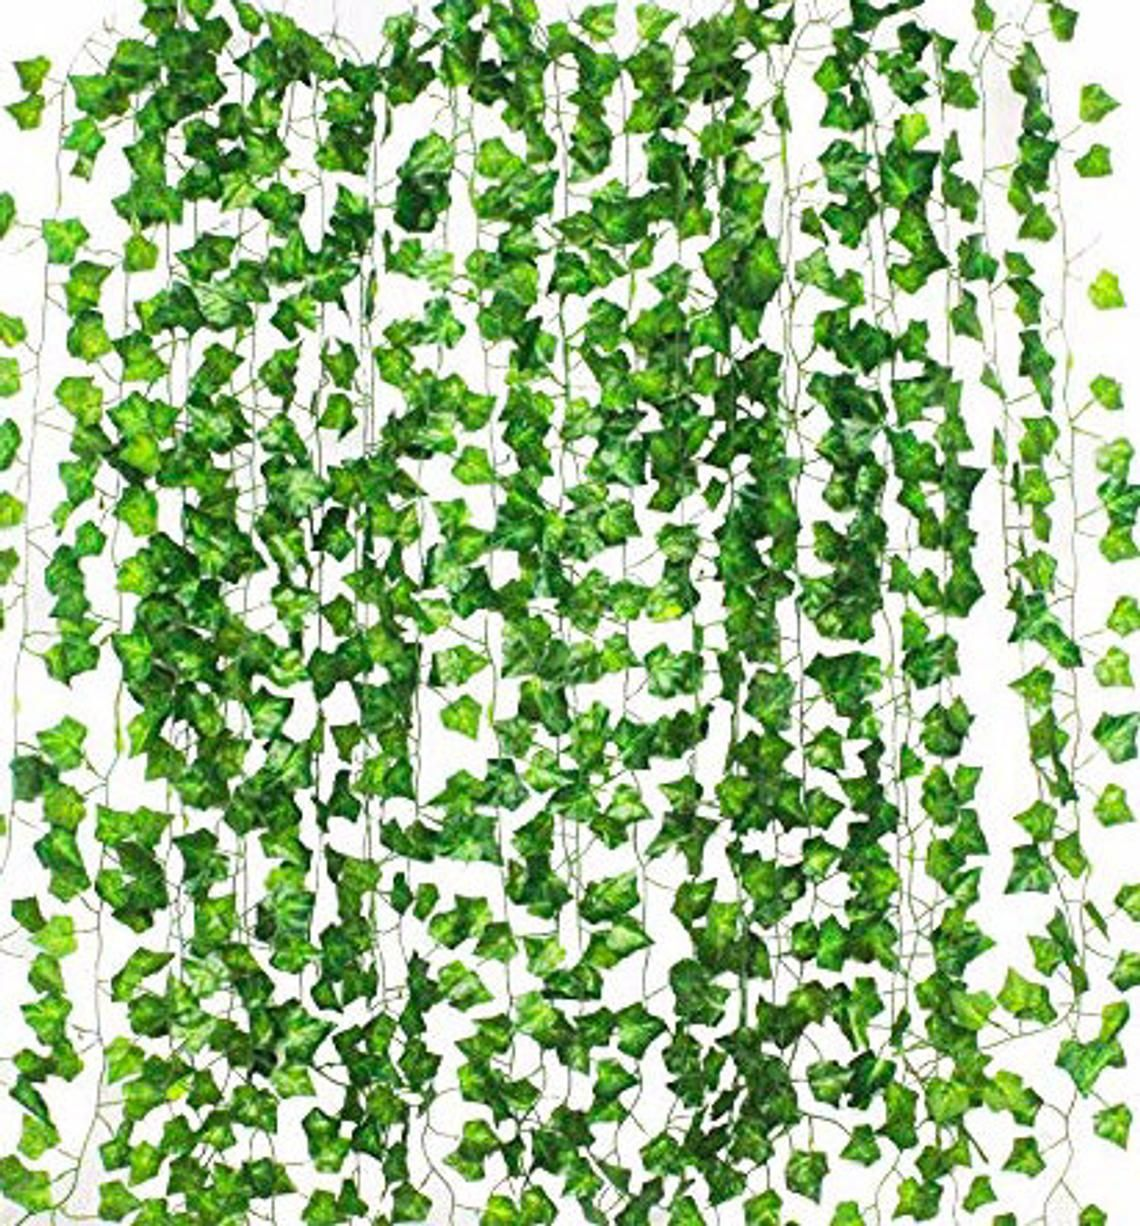 24 Pack (Each 79 Inches long) (Total 158Ft)Artificial Vines, Artificial Eucalyptus Leaf Garland DIY Greek Wild Jungle Decorative Botanical #leafgarland